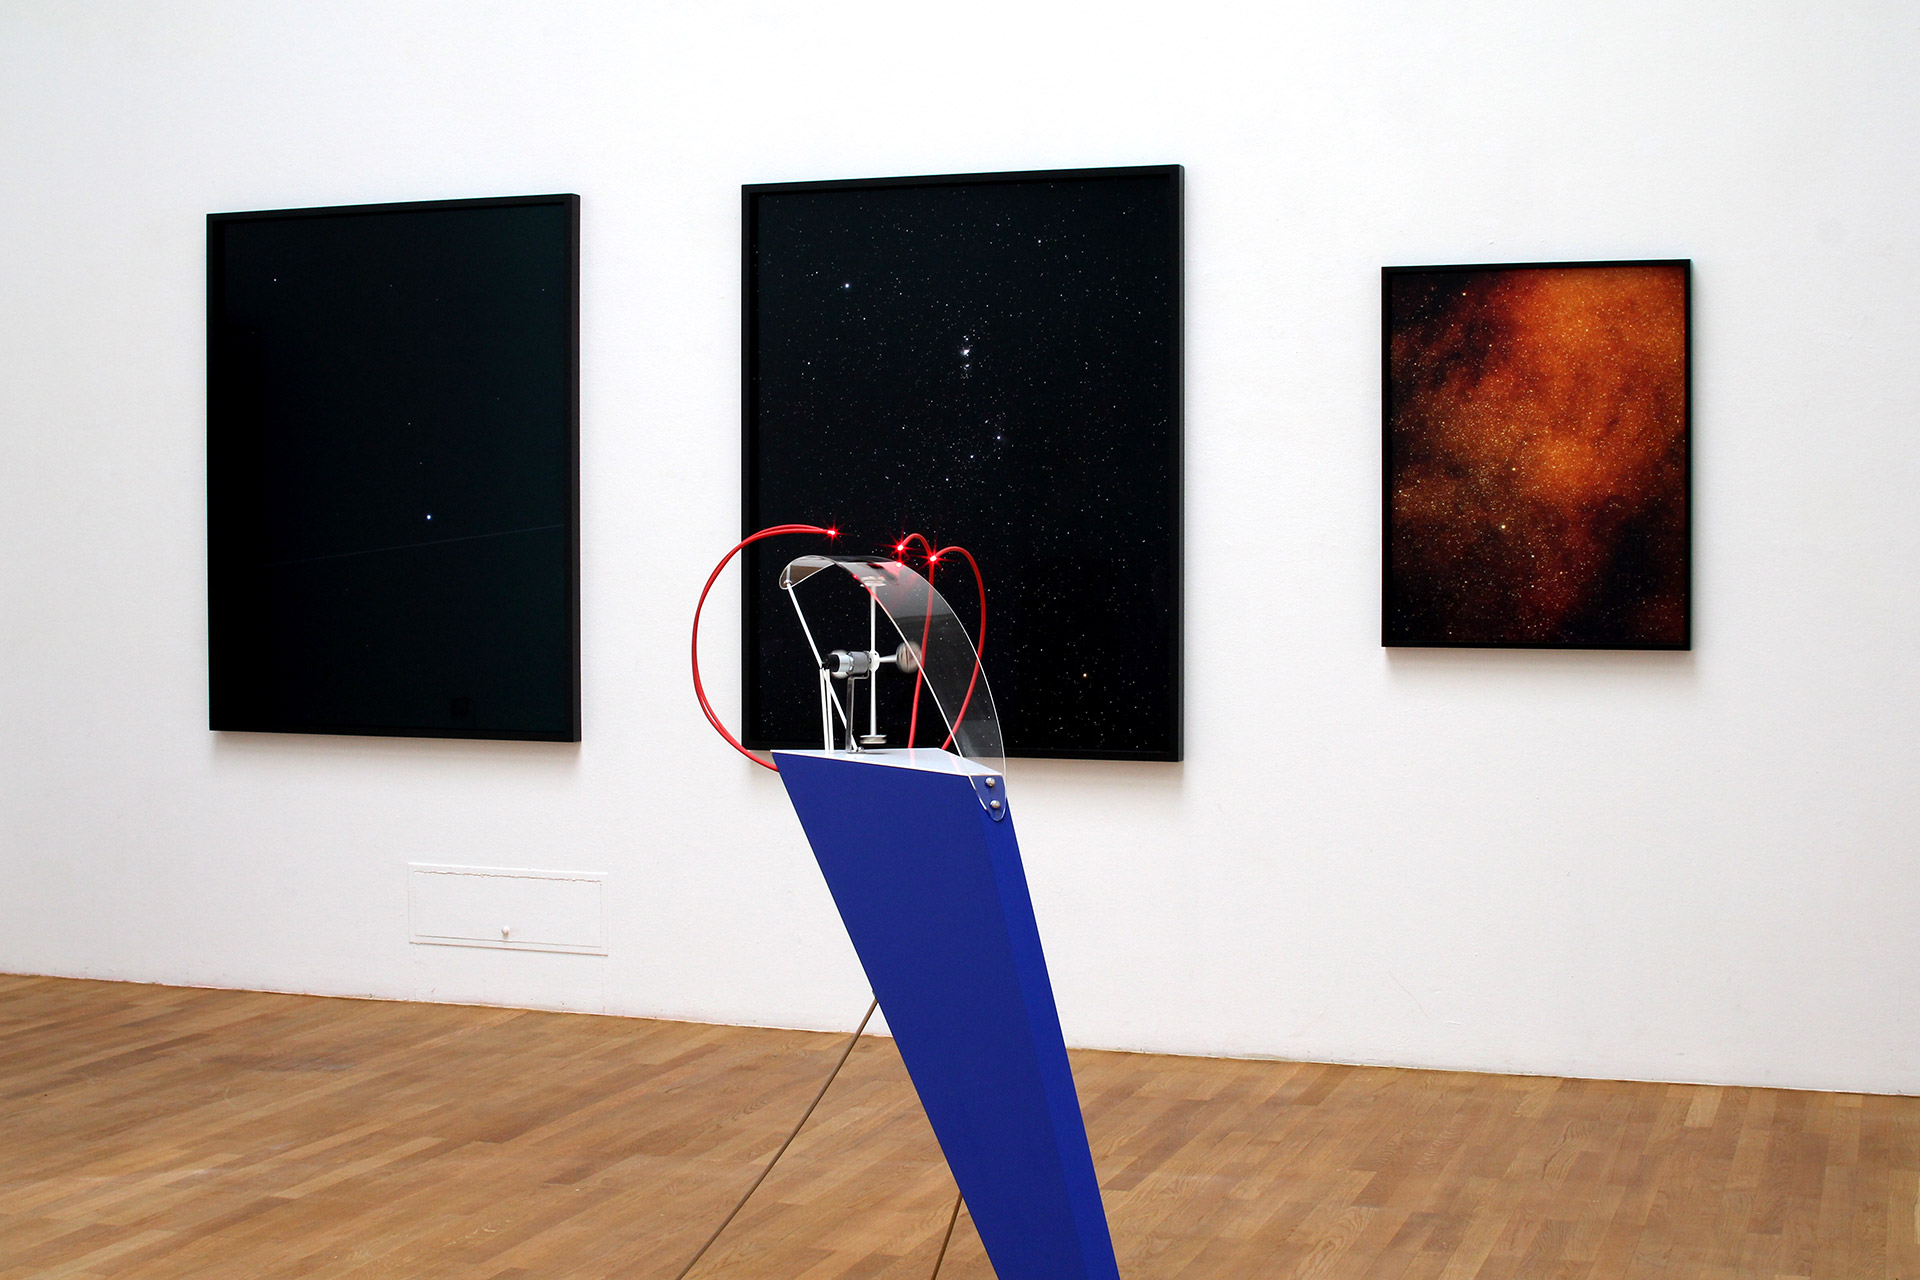 The-Wizards-Chamber-Kunsthalle-Winterthur-2013-3.jpg